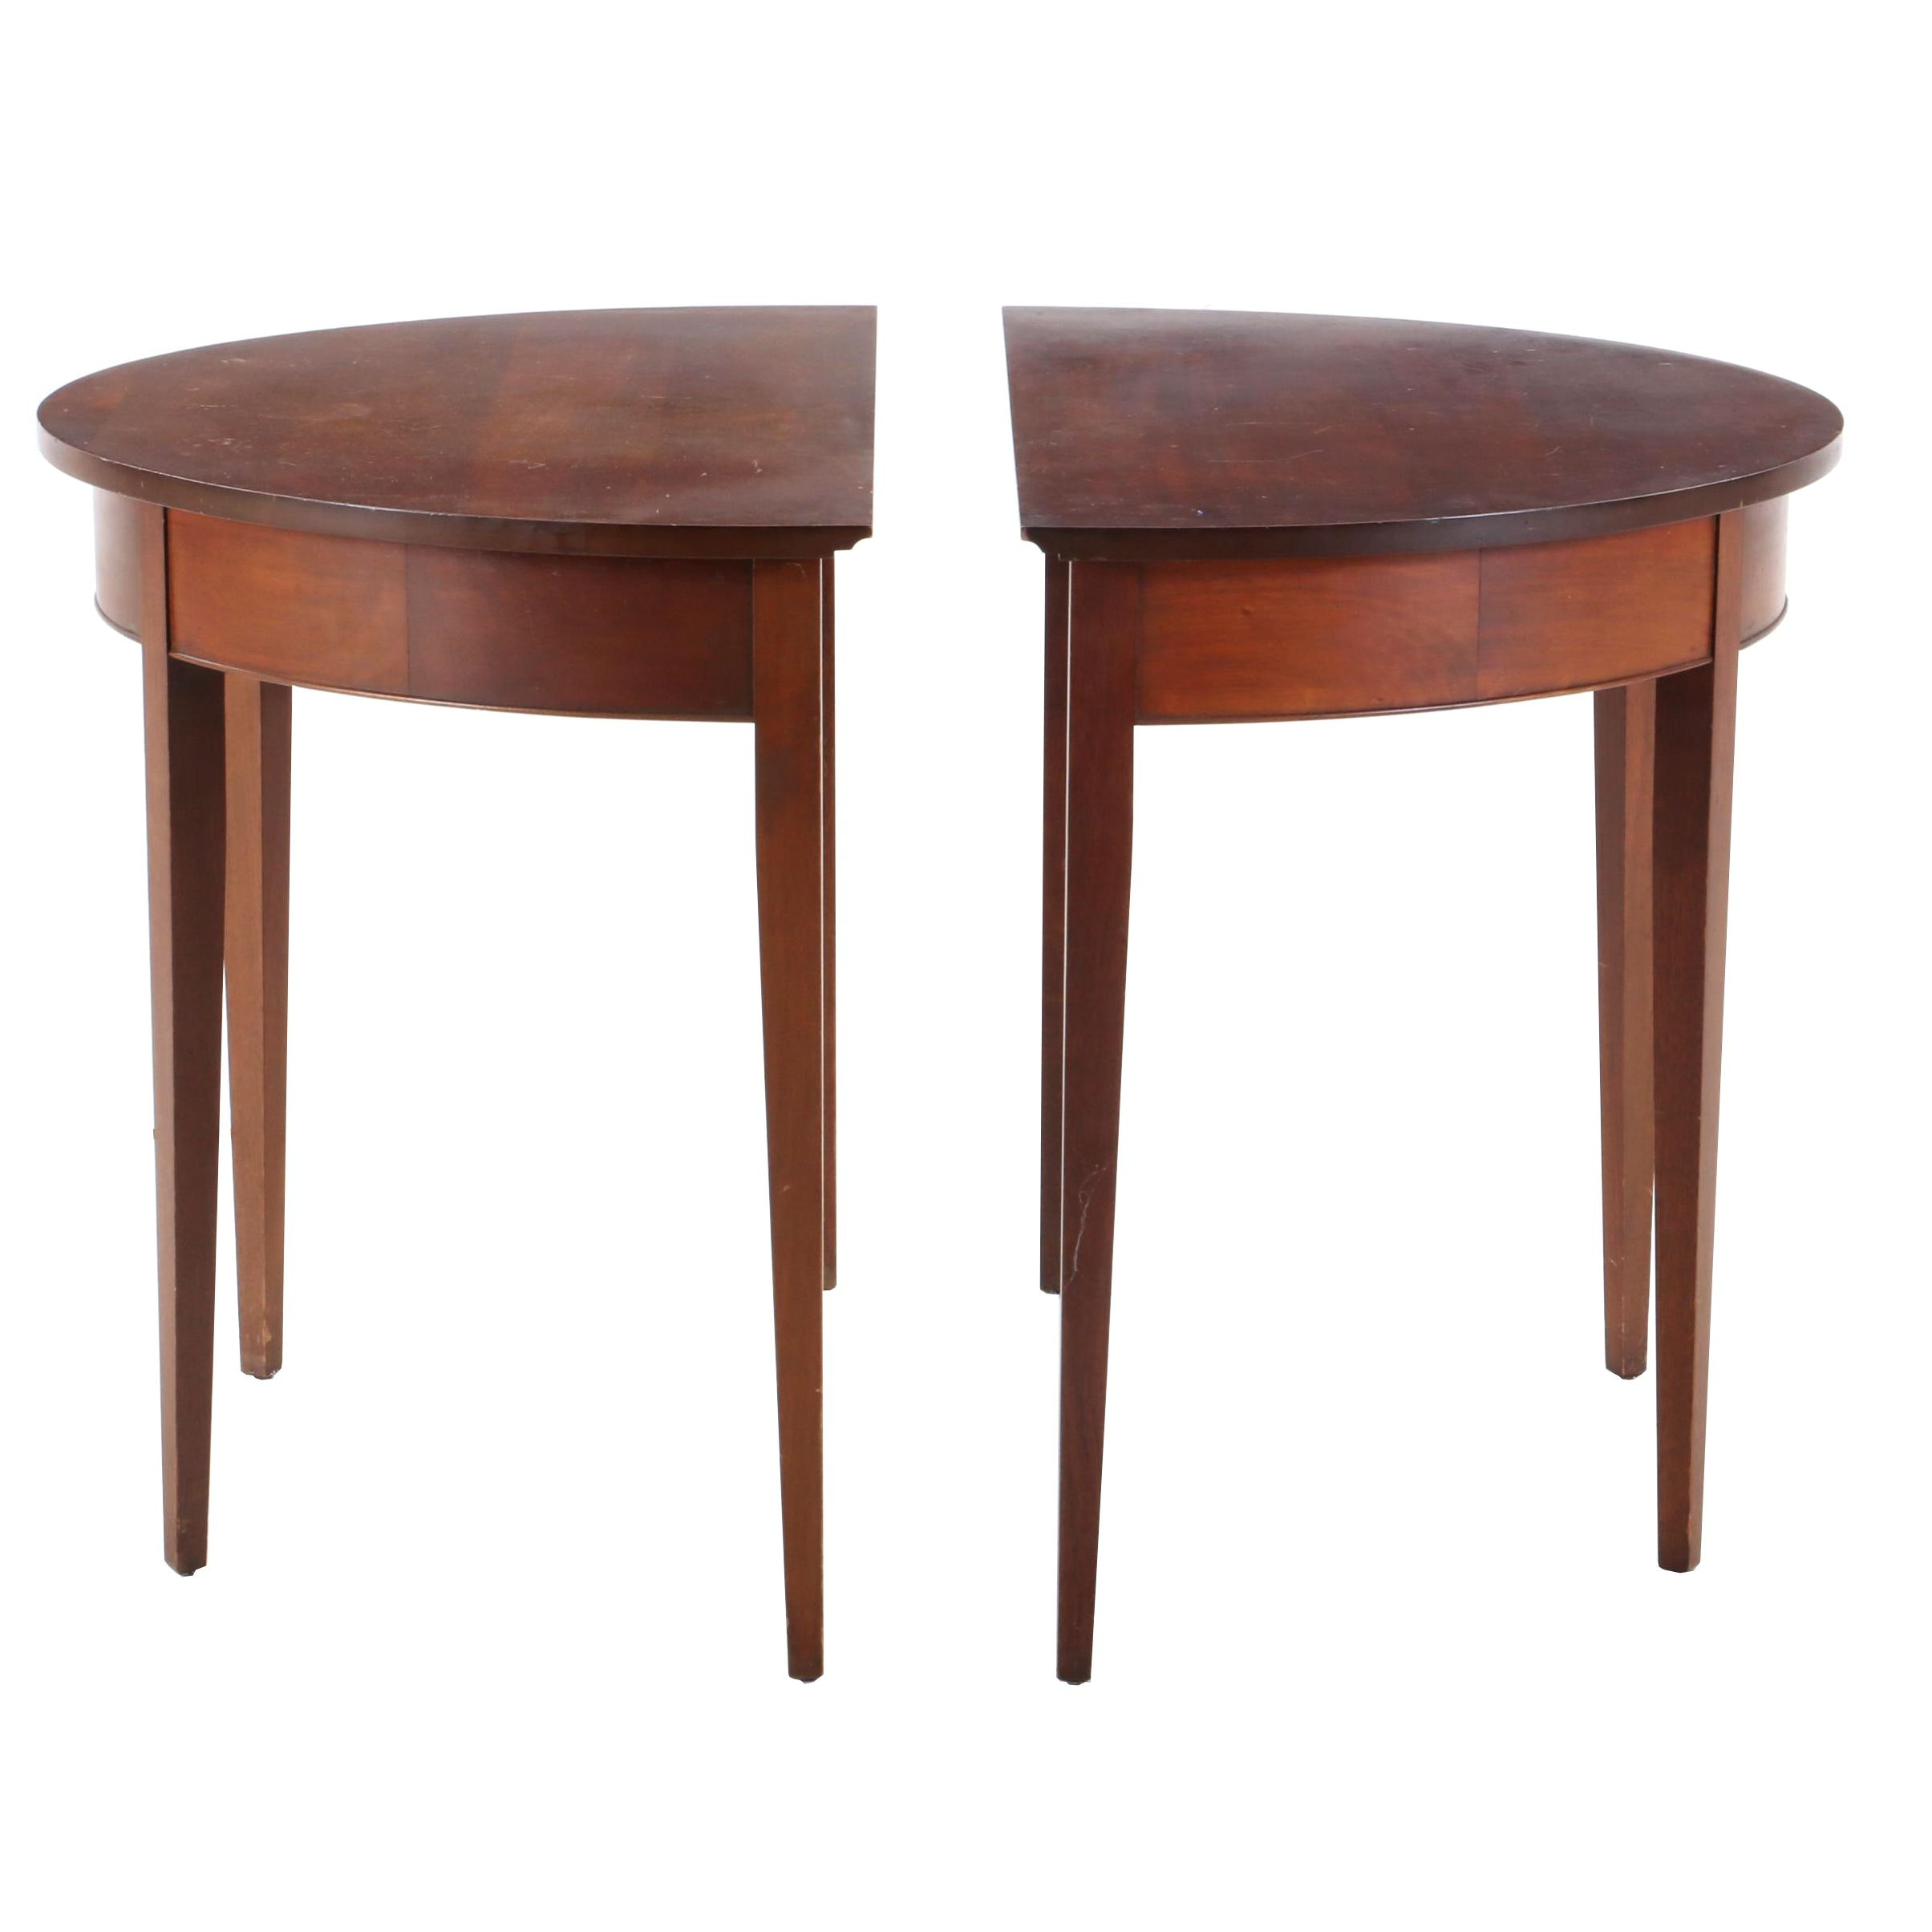 Federal Style Mahogany Demilune Console Tables, Late 20th Century